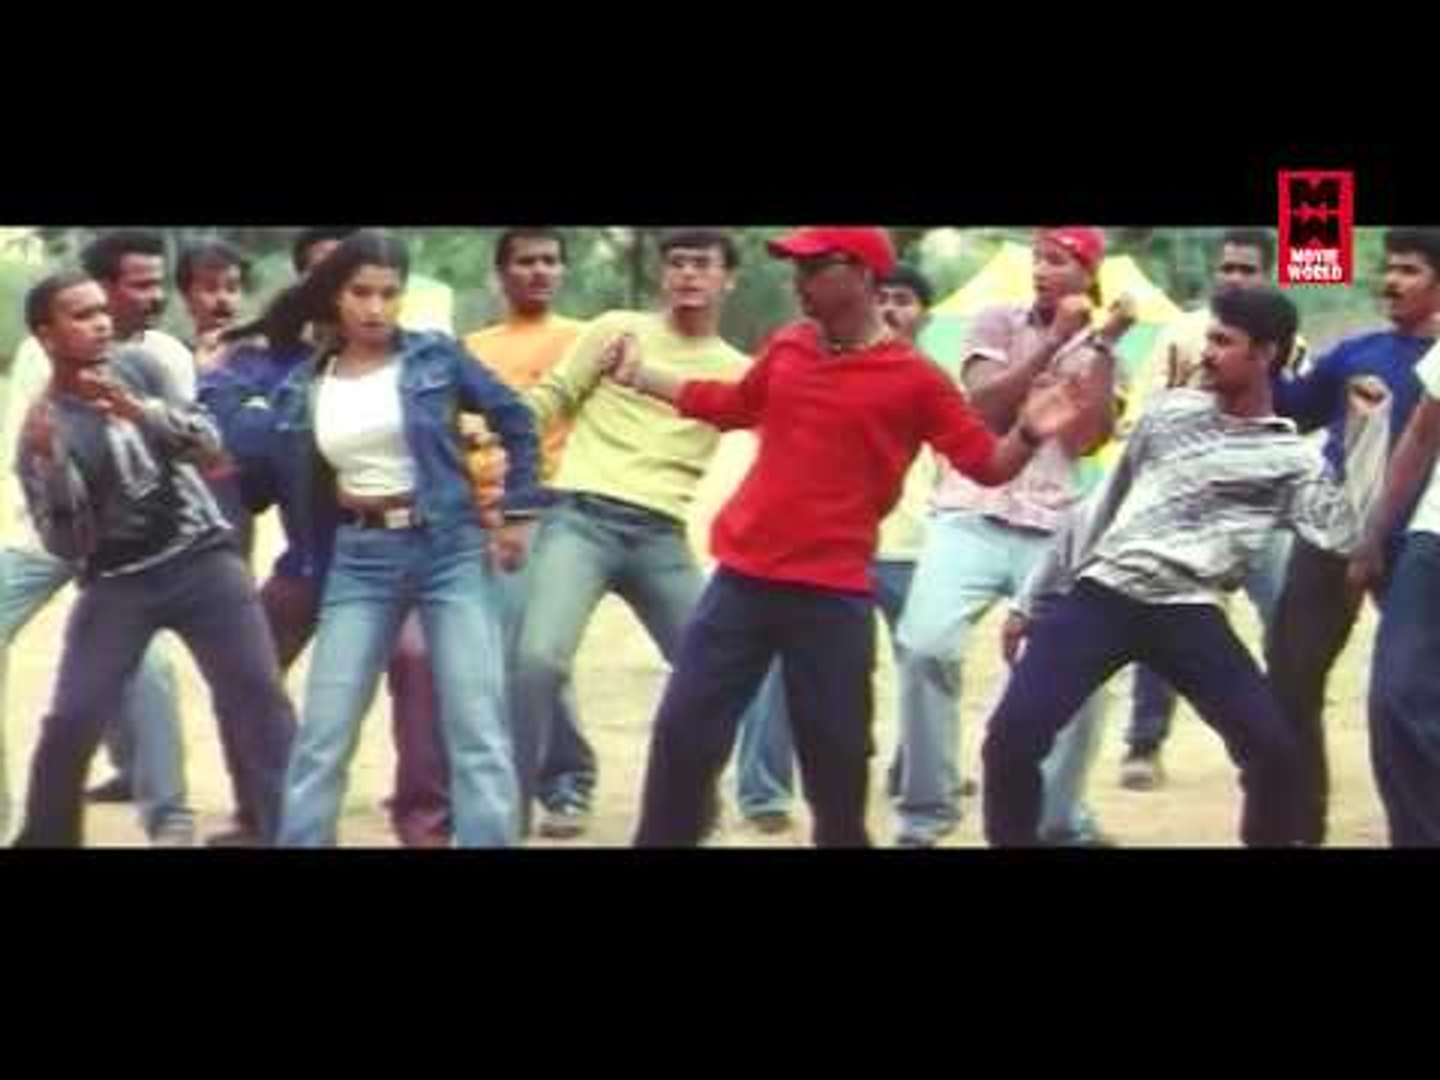 Tamil New Movies 2016 Full Movie # Tamil Full Movie 2016 New Releases # Tamil  Movies 2016